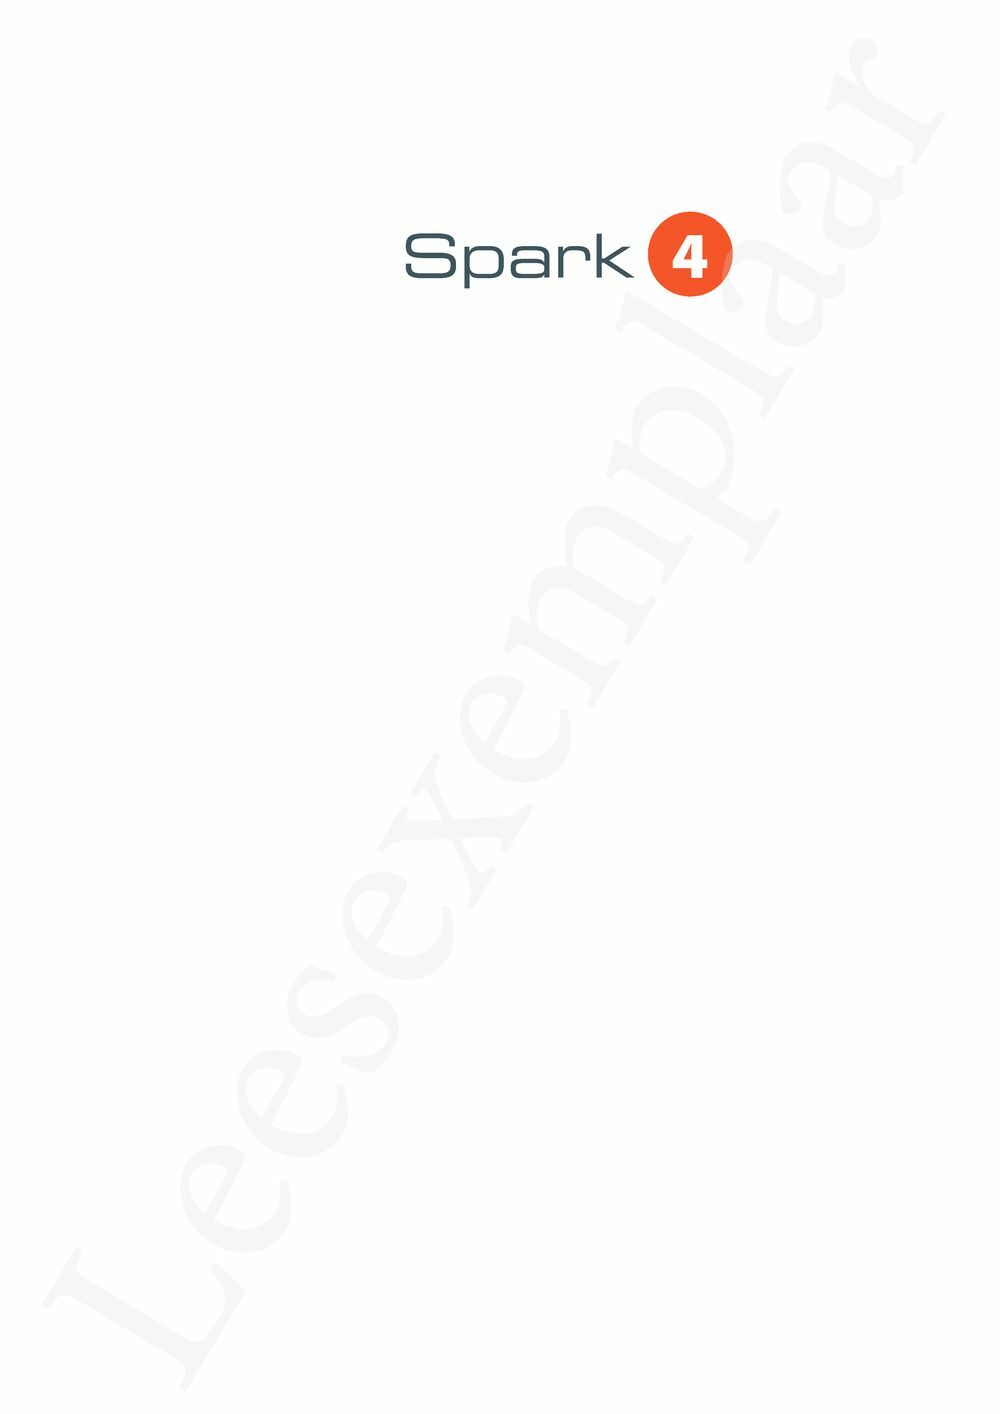 Preview: Spark 4 Leerwerkboek